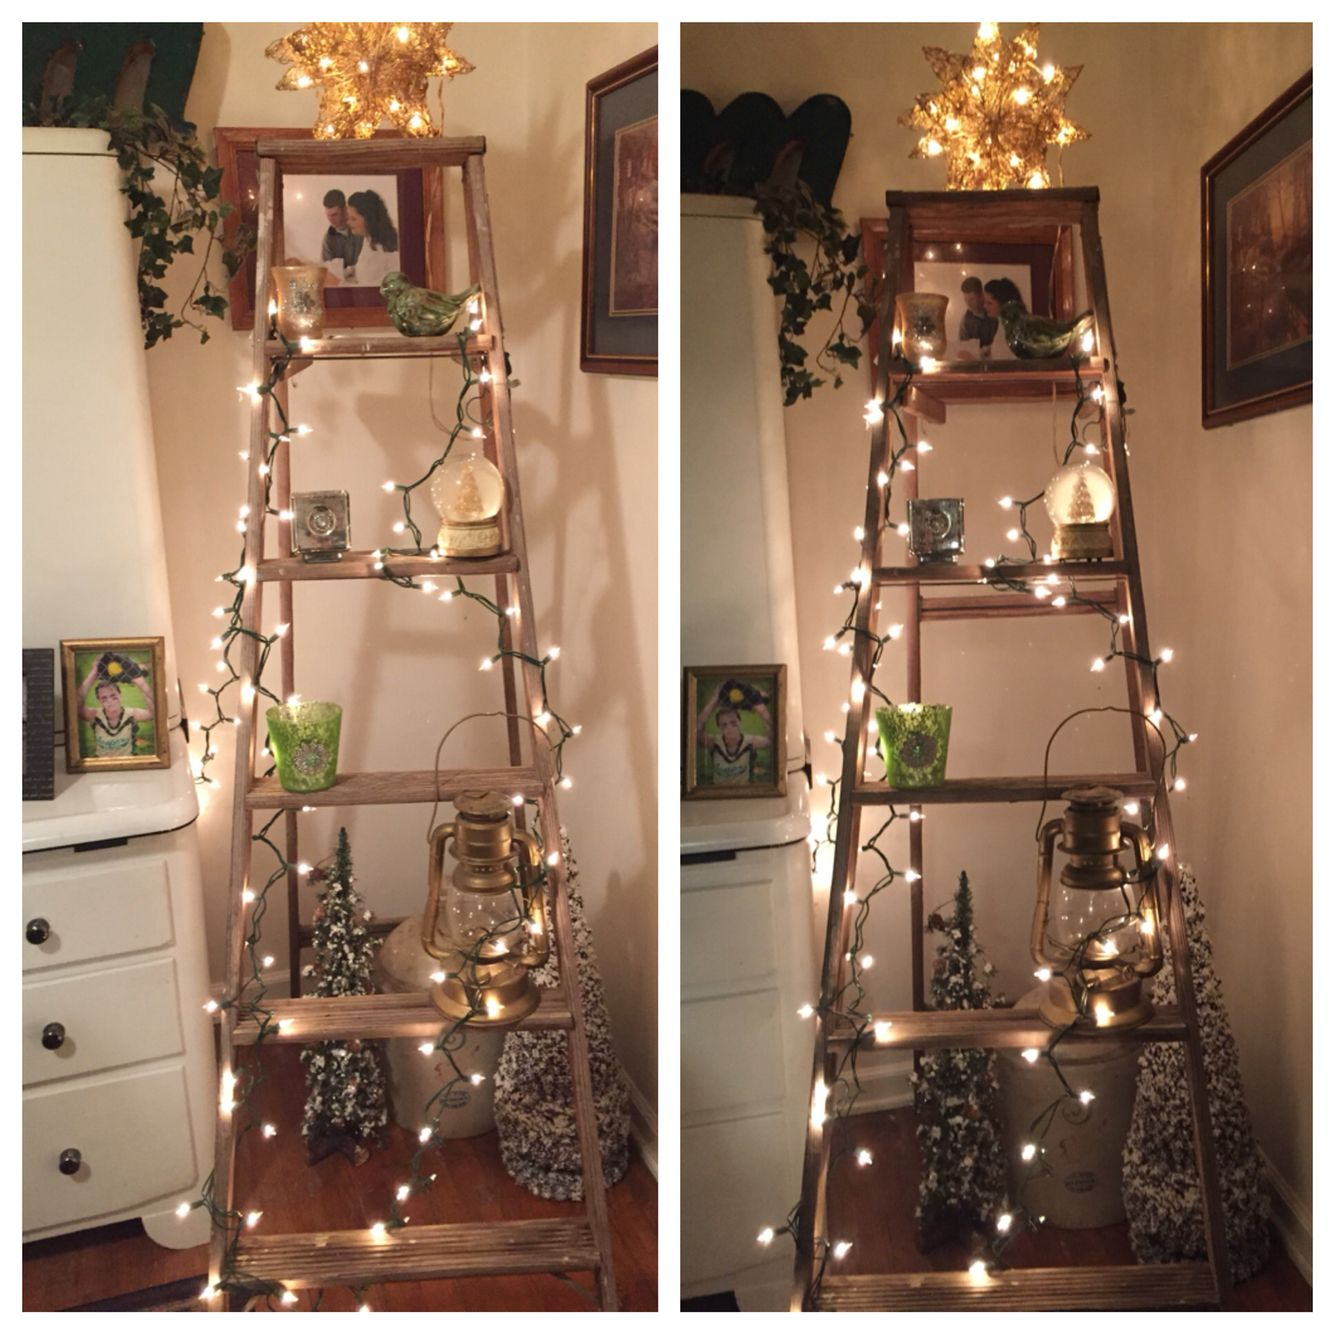 Old Wooden Ladder Used For Christmas Decor Christmas Porch Decor Old Wooden Ladders Ladder Decor